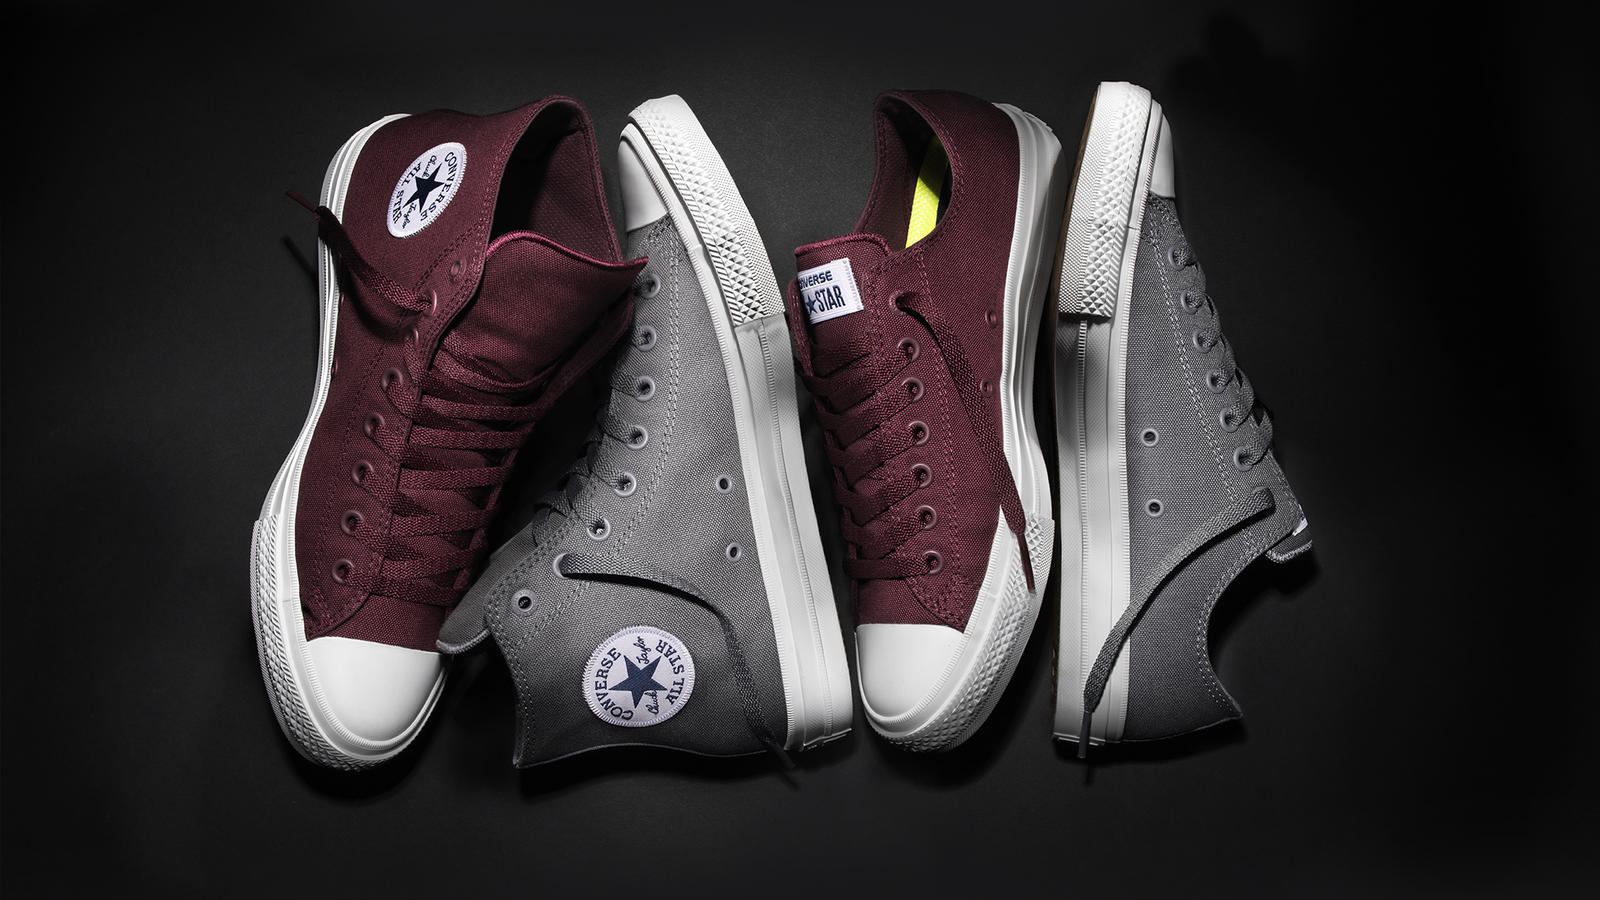 Converse Chuck Taylor All Star Ii Unveils New Seasonal